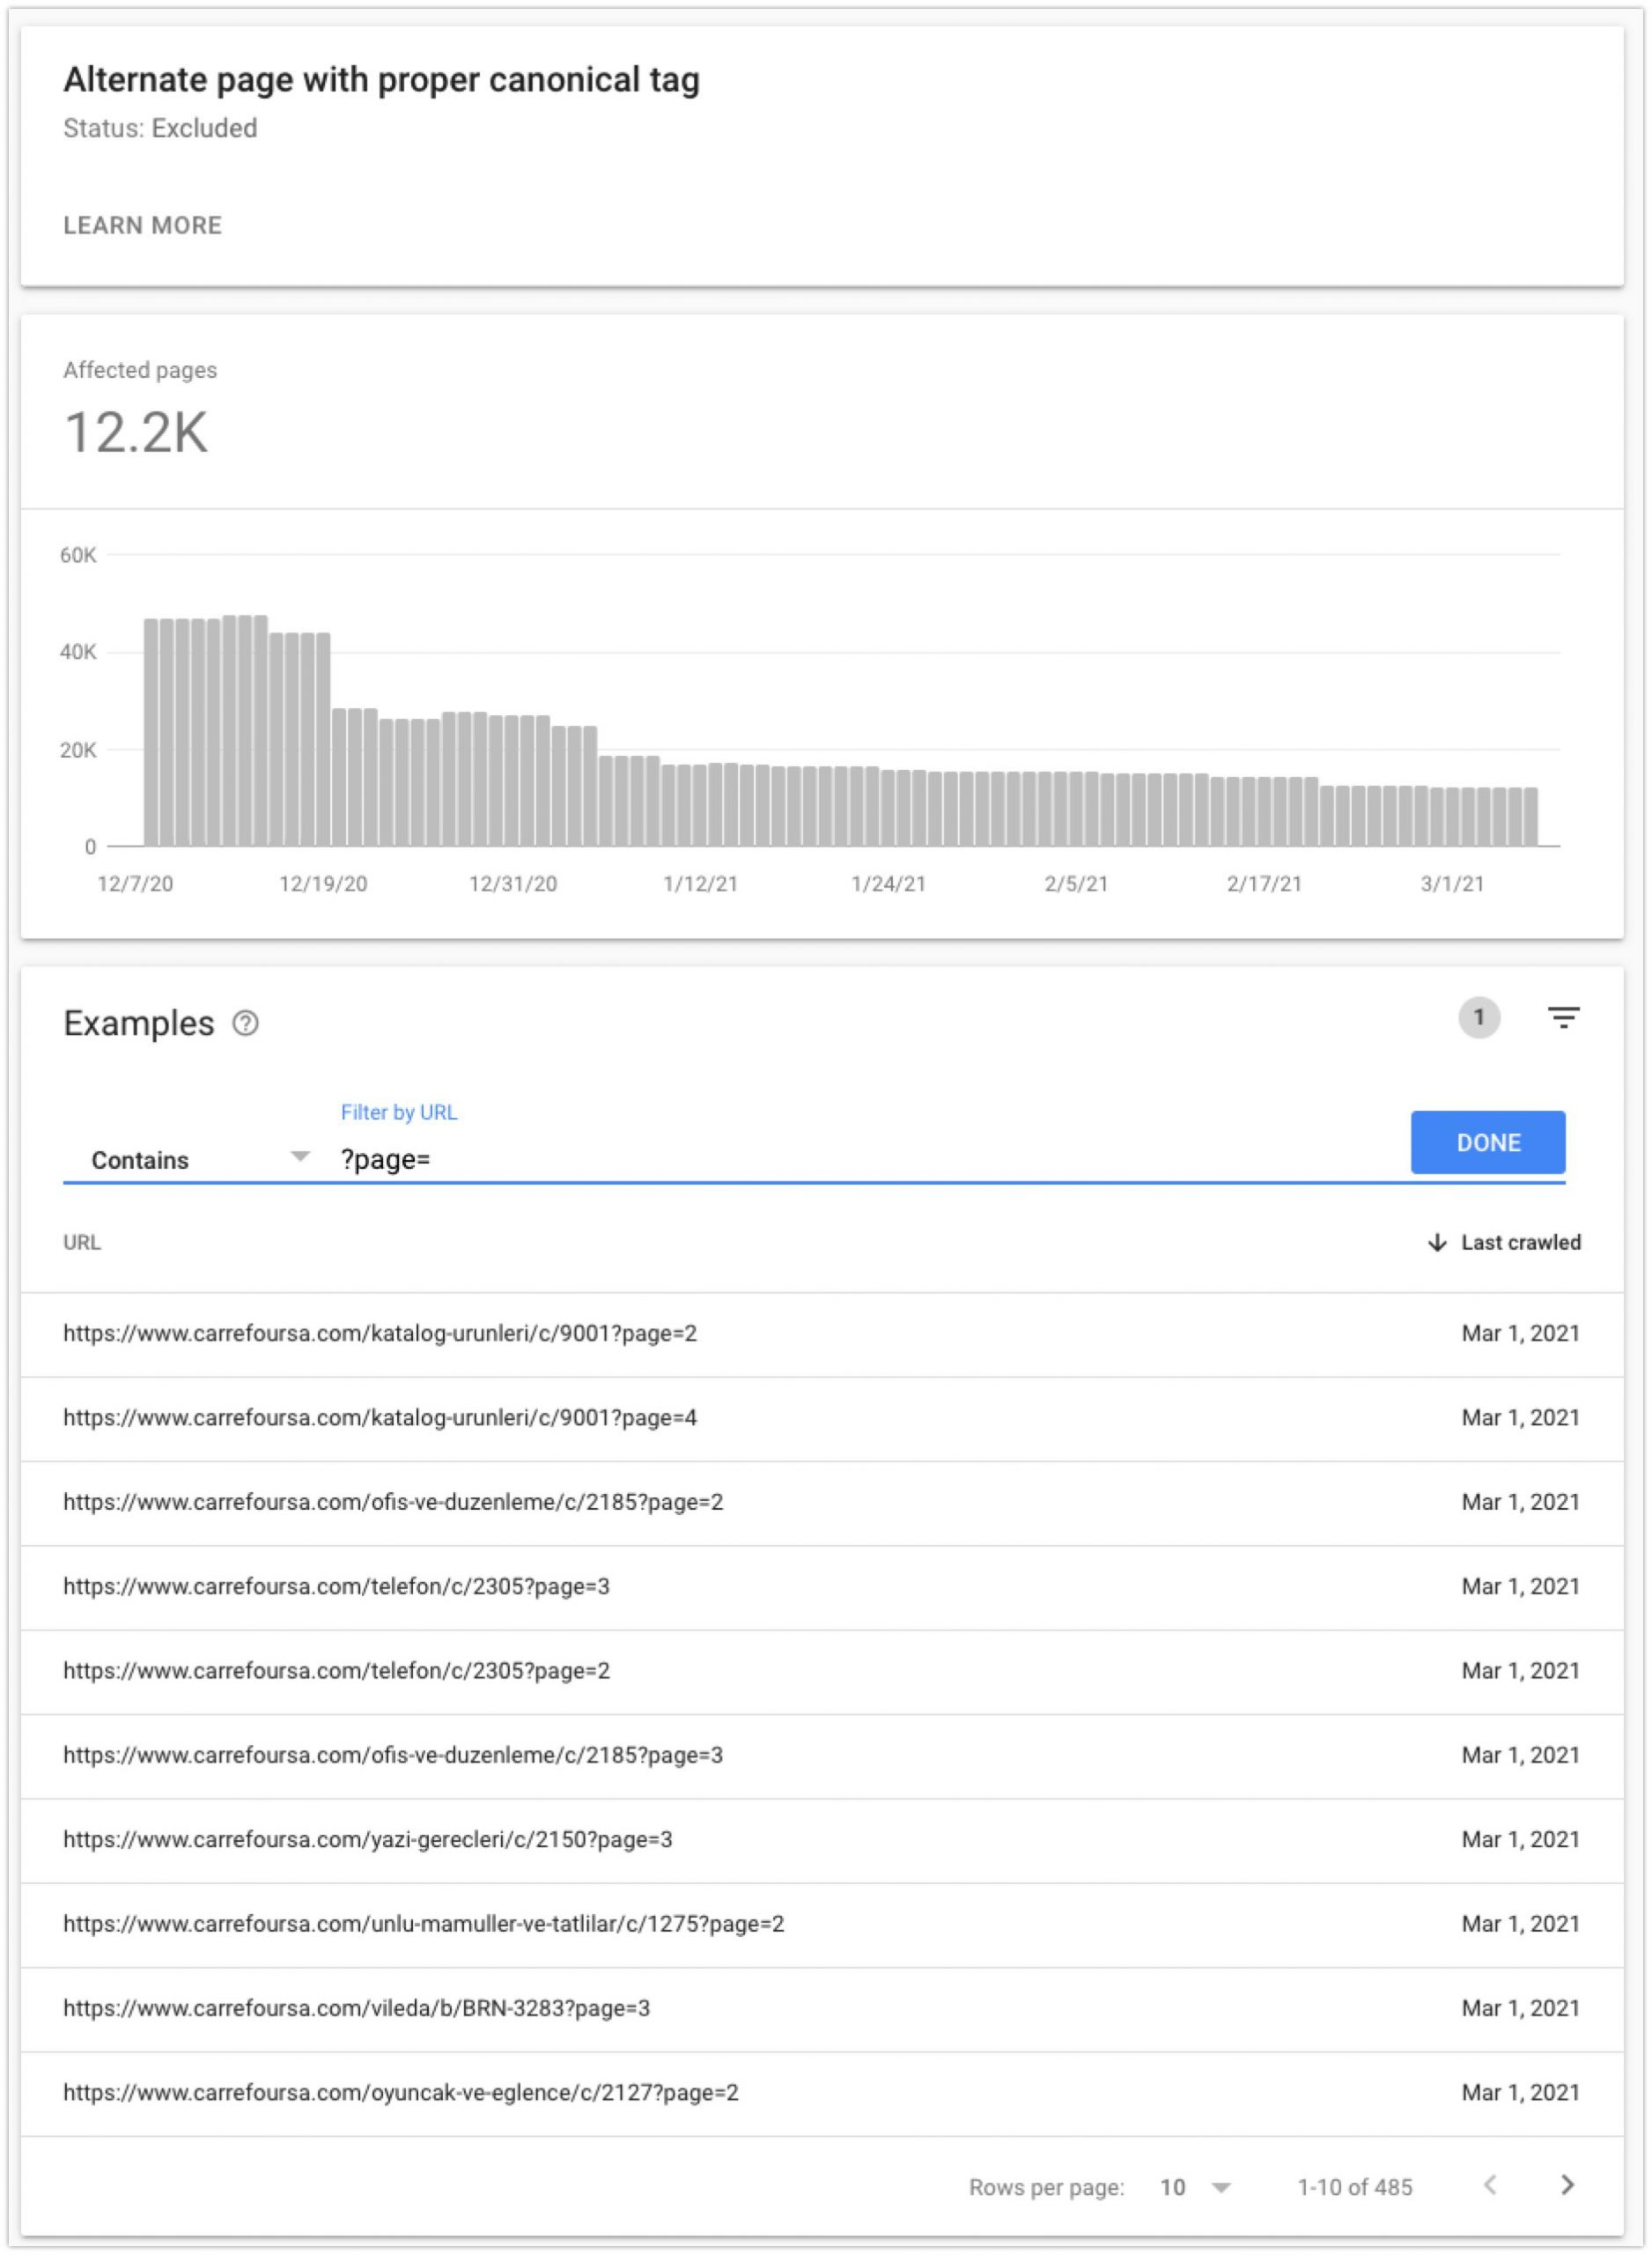 Google Search Console, Index Coverage, Alternate page with proper canonical tag - report